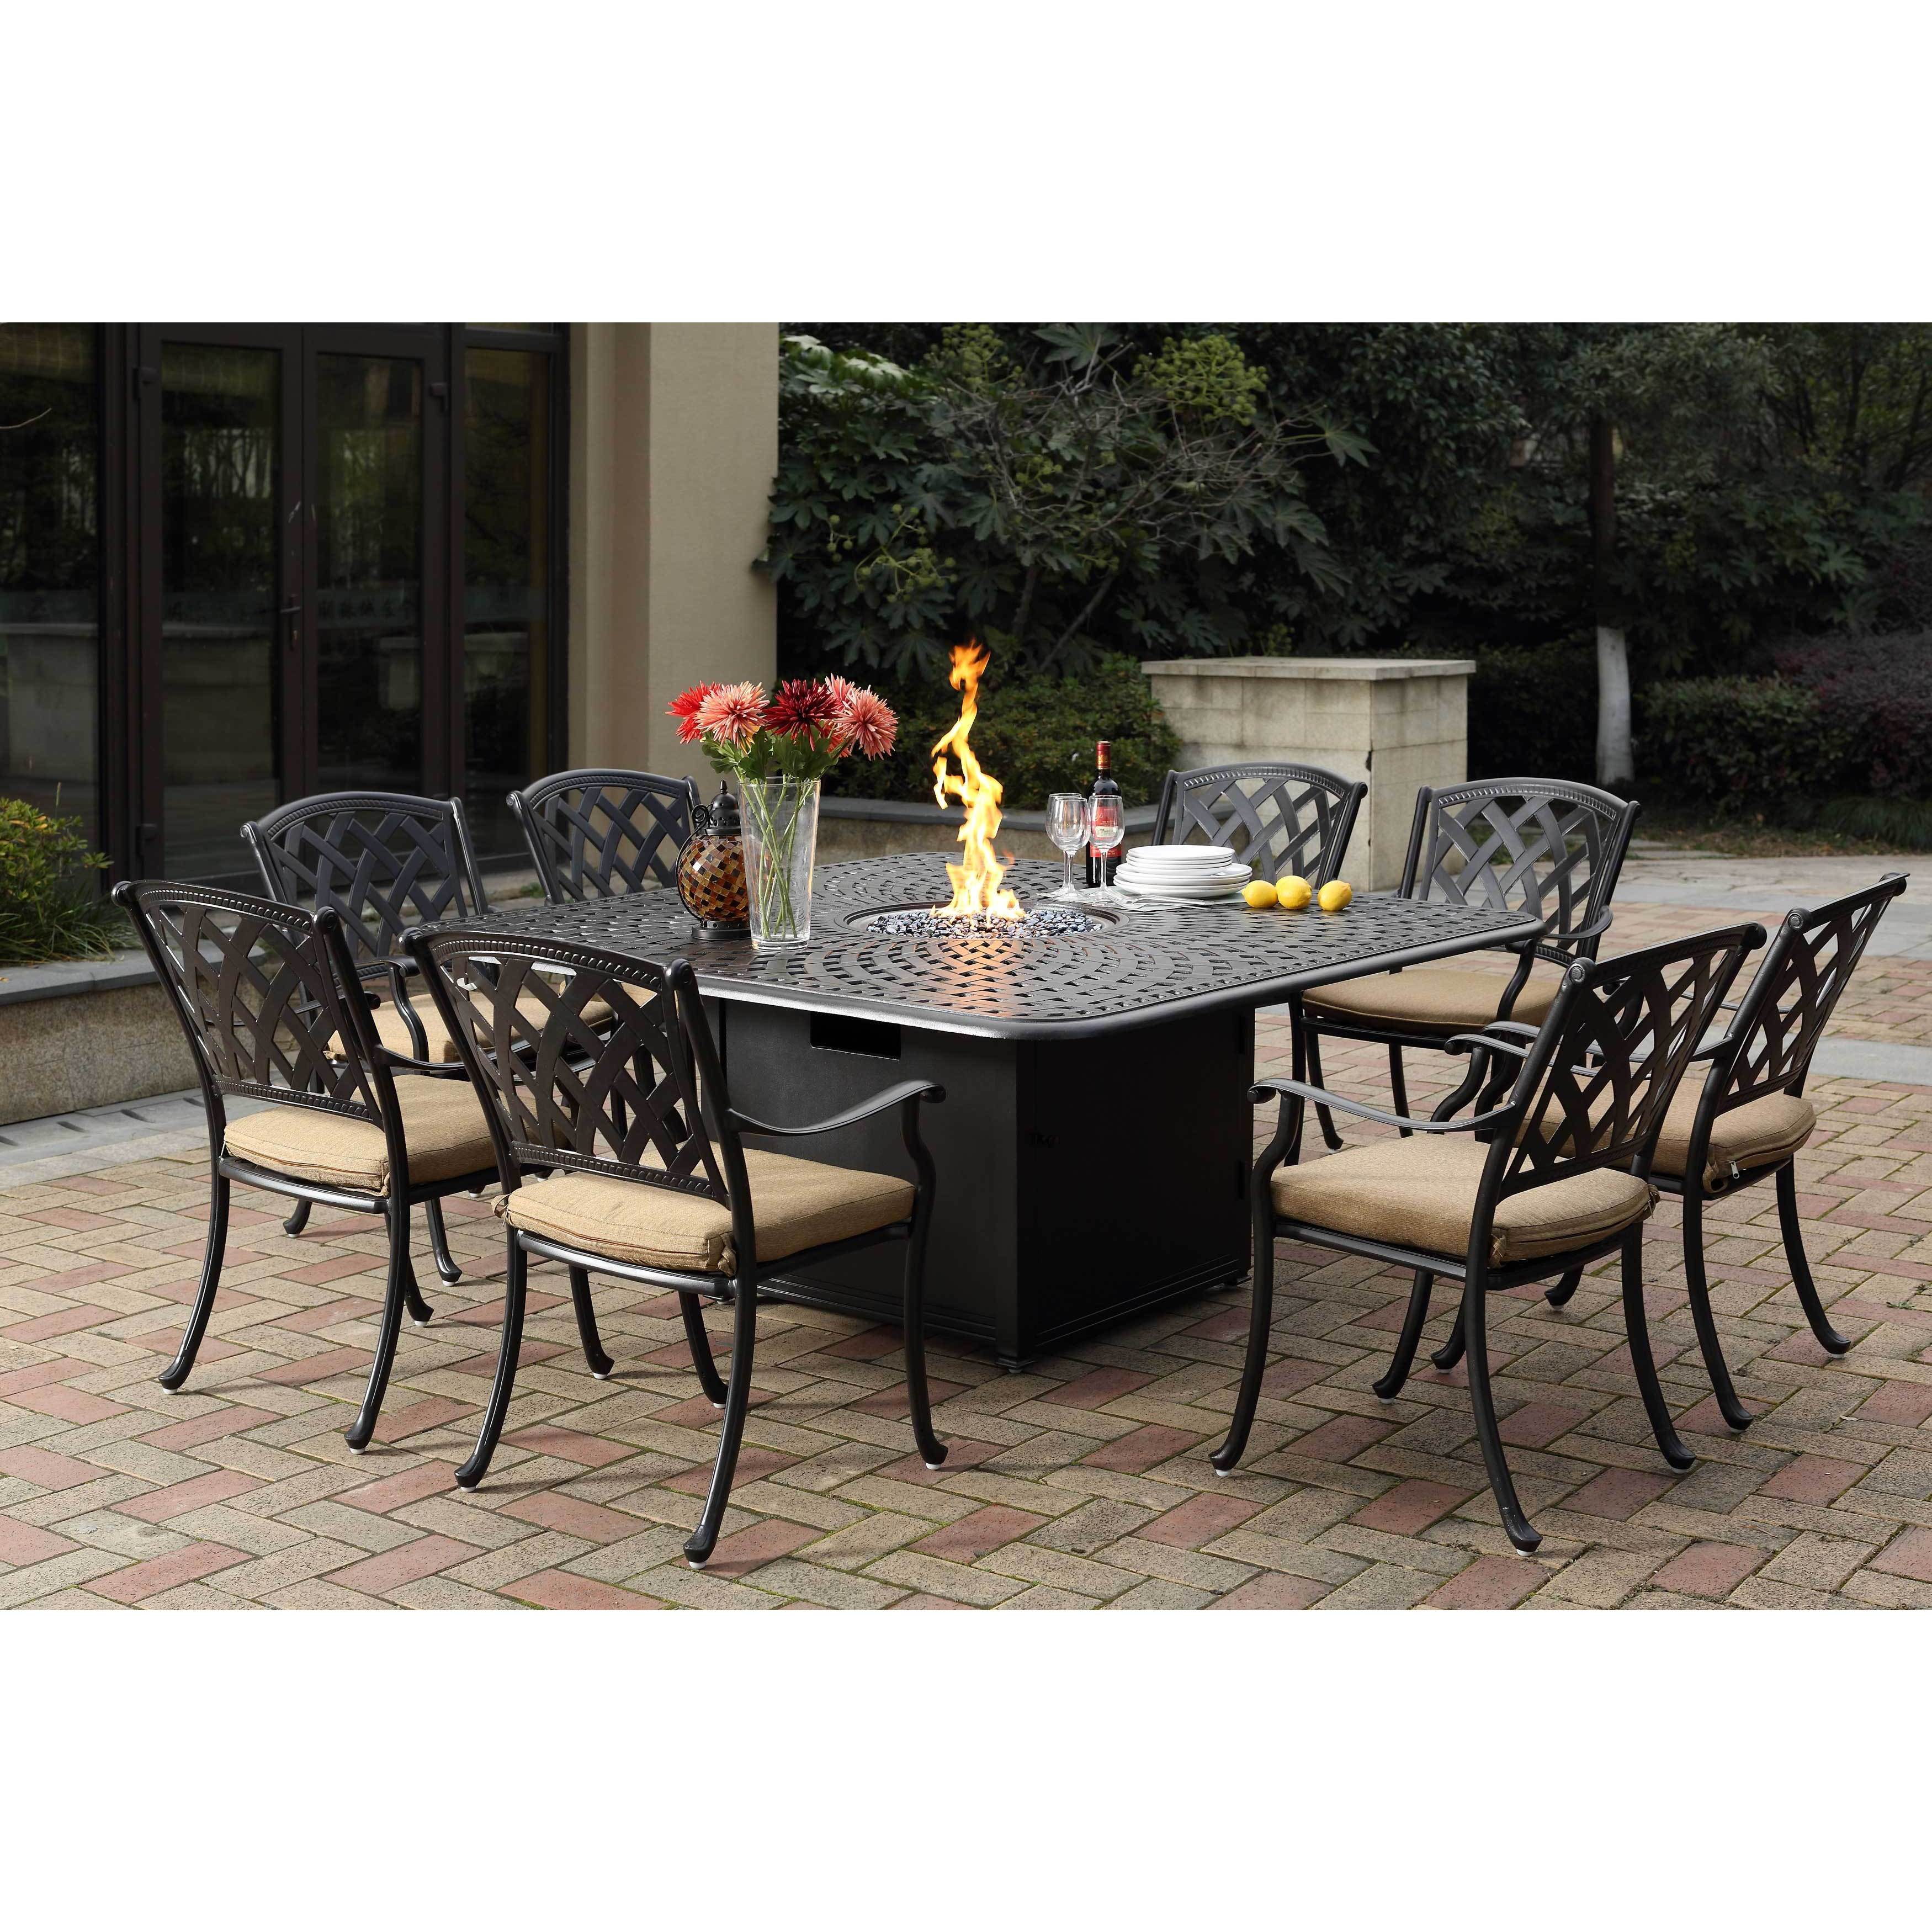 Darlee Ocean View Cast-aluminum Dining Set With Sesame Se...